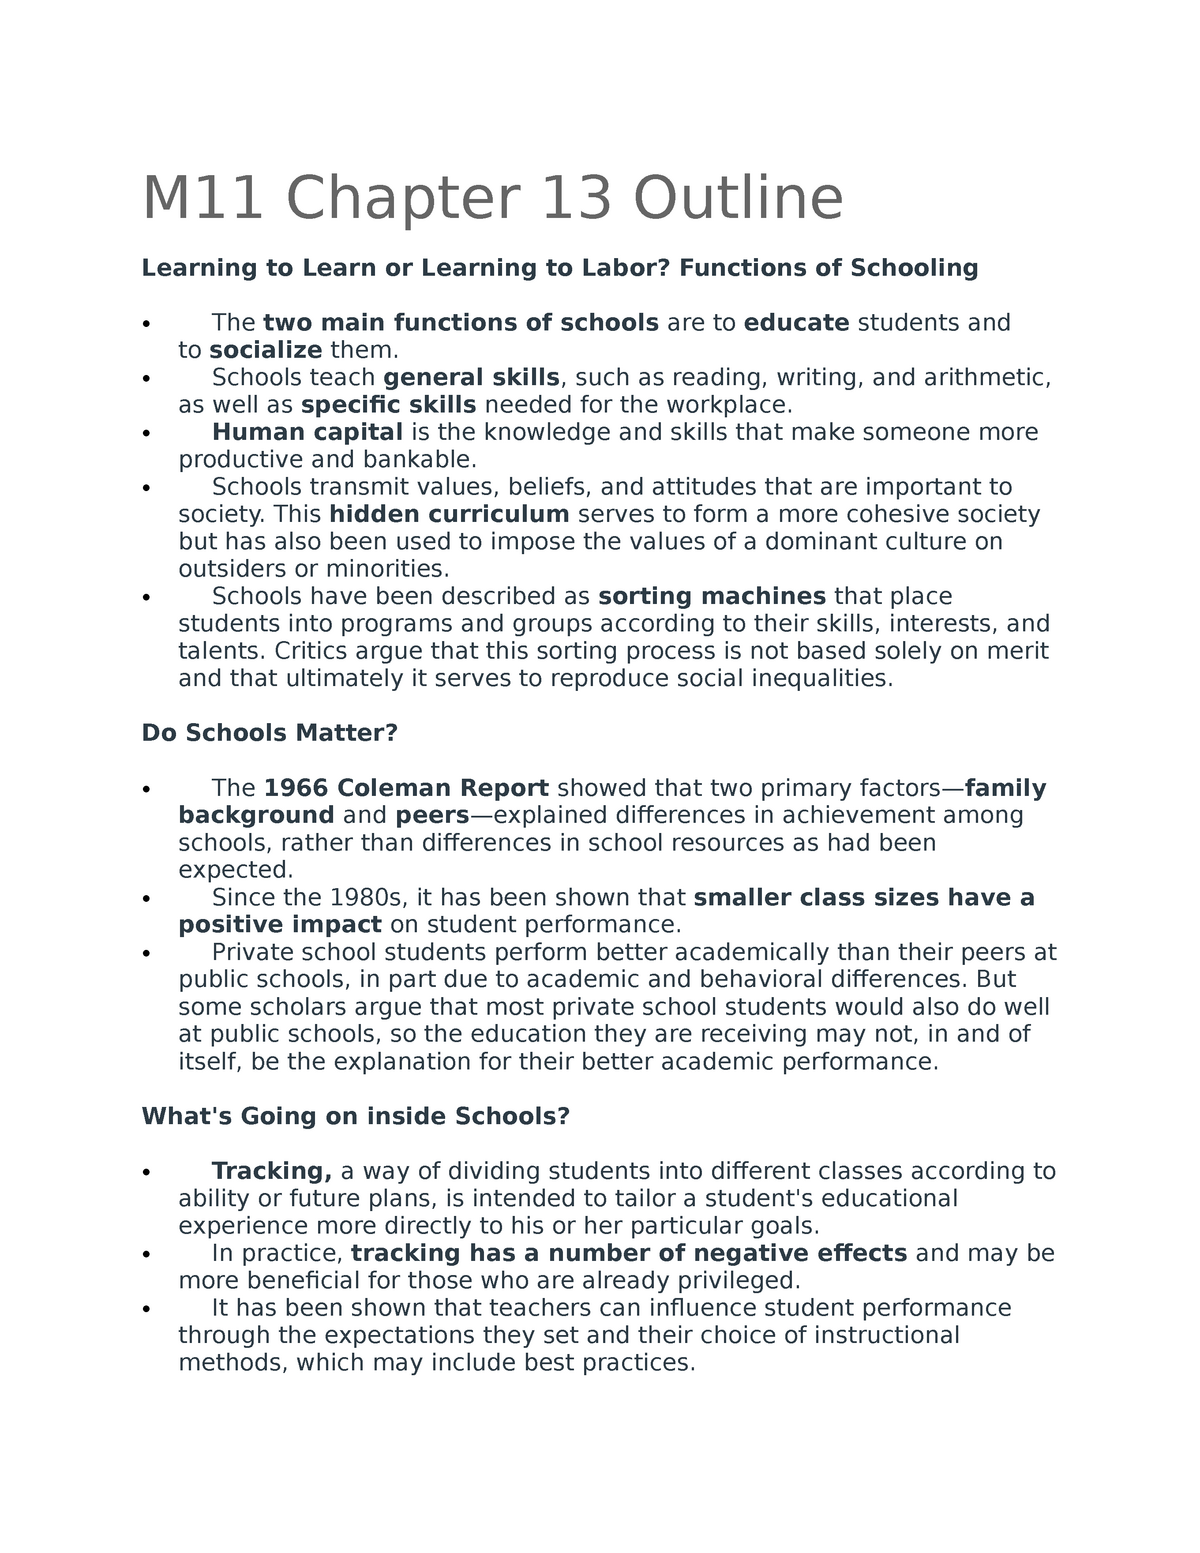 M11 Chapter 13 Outline - SOCI 111 Introduction to Sociology